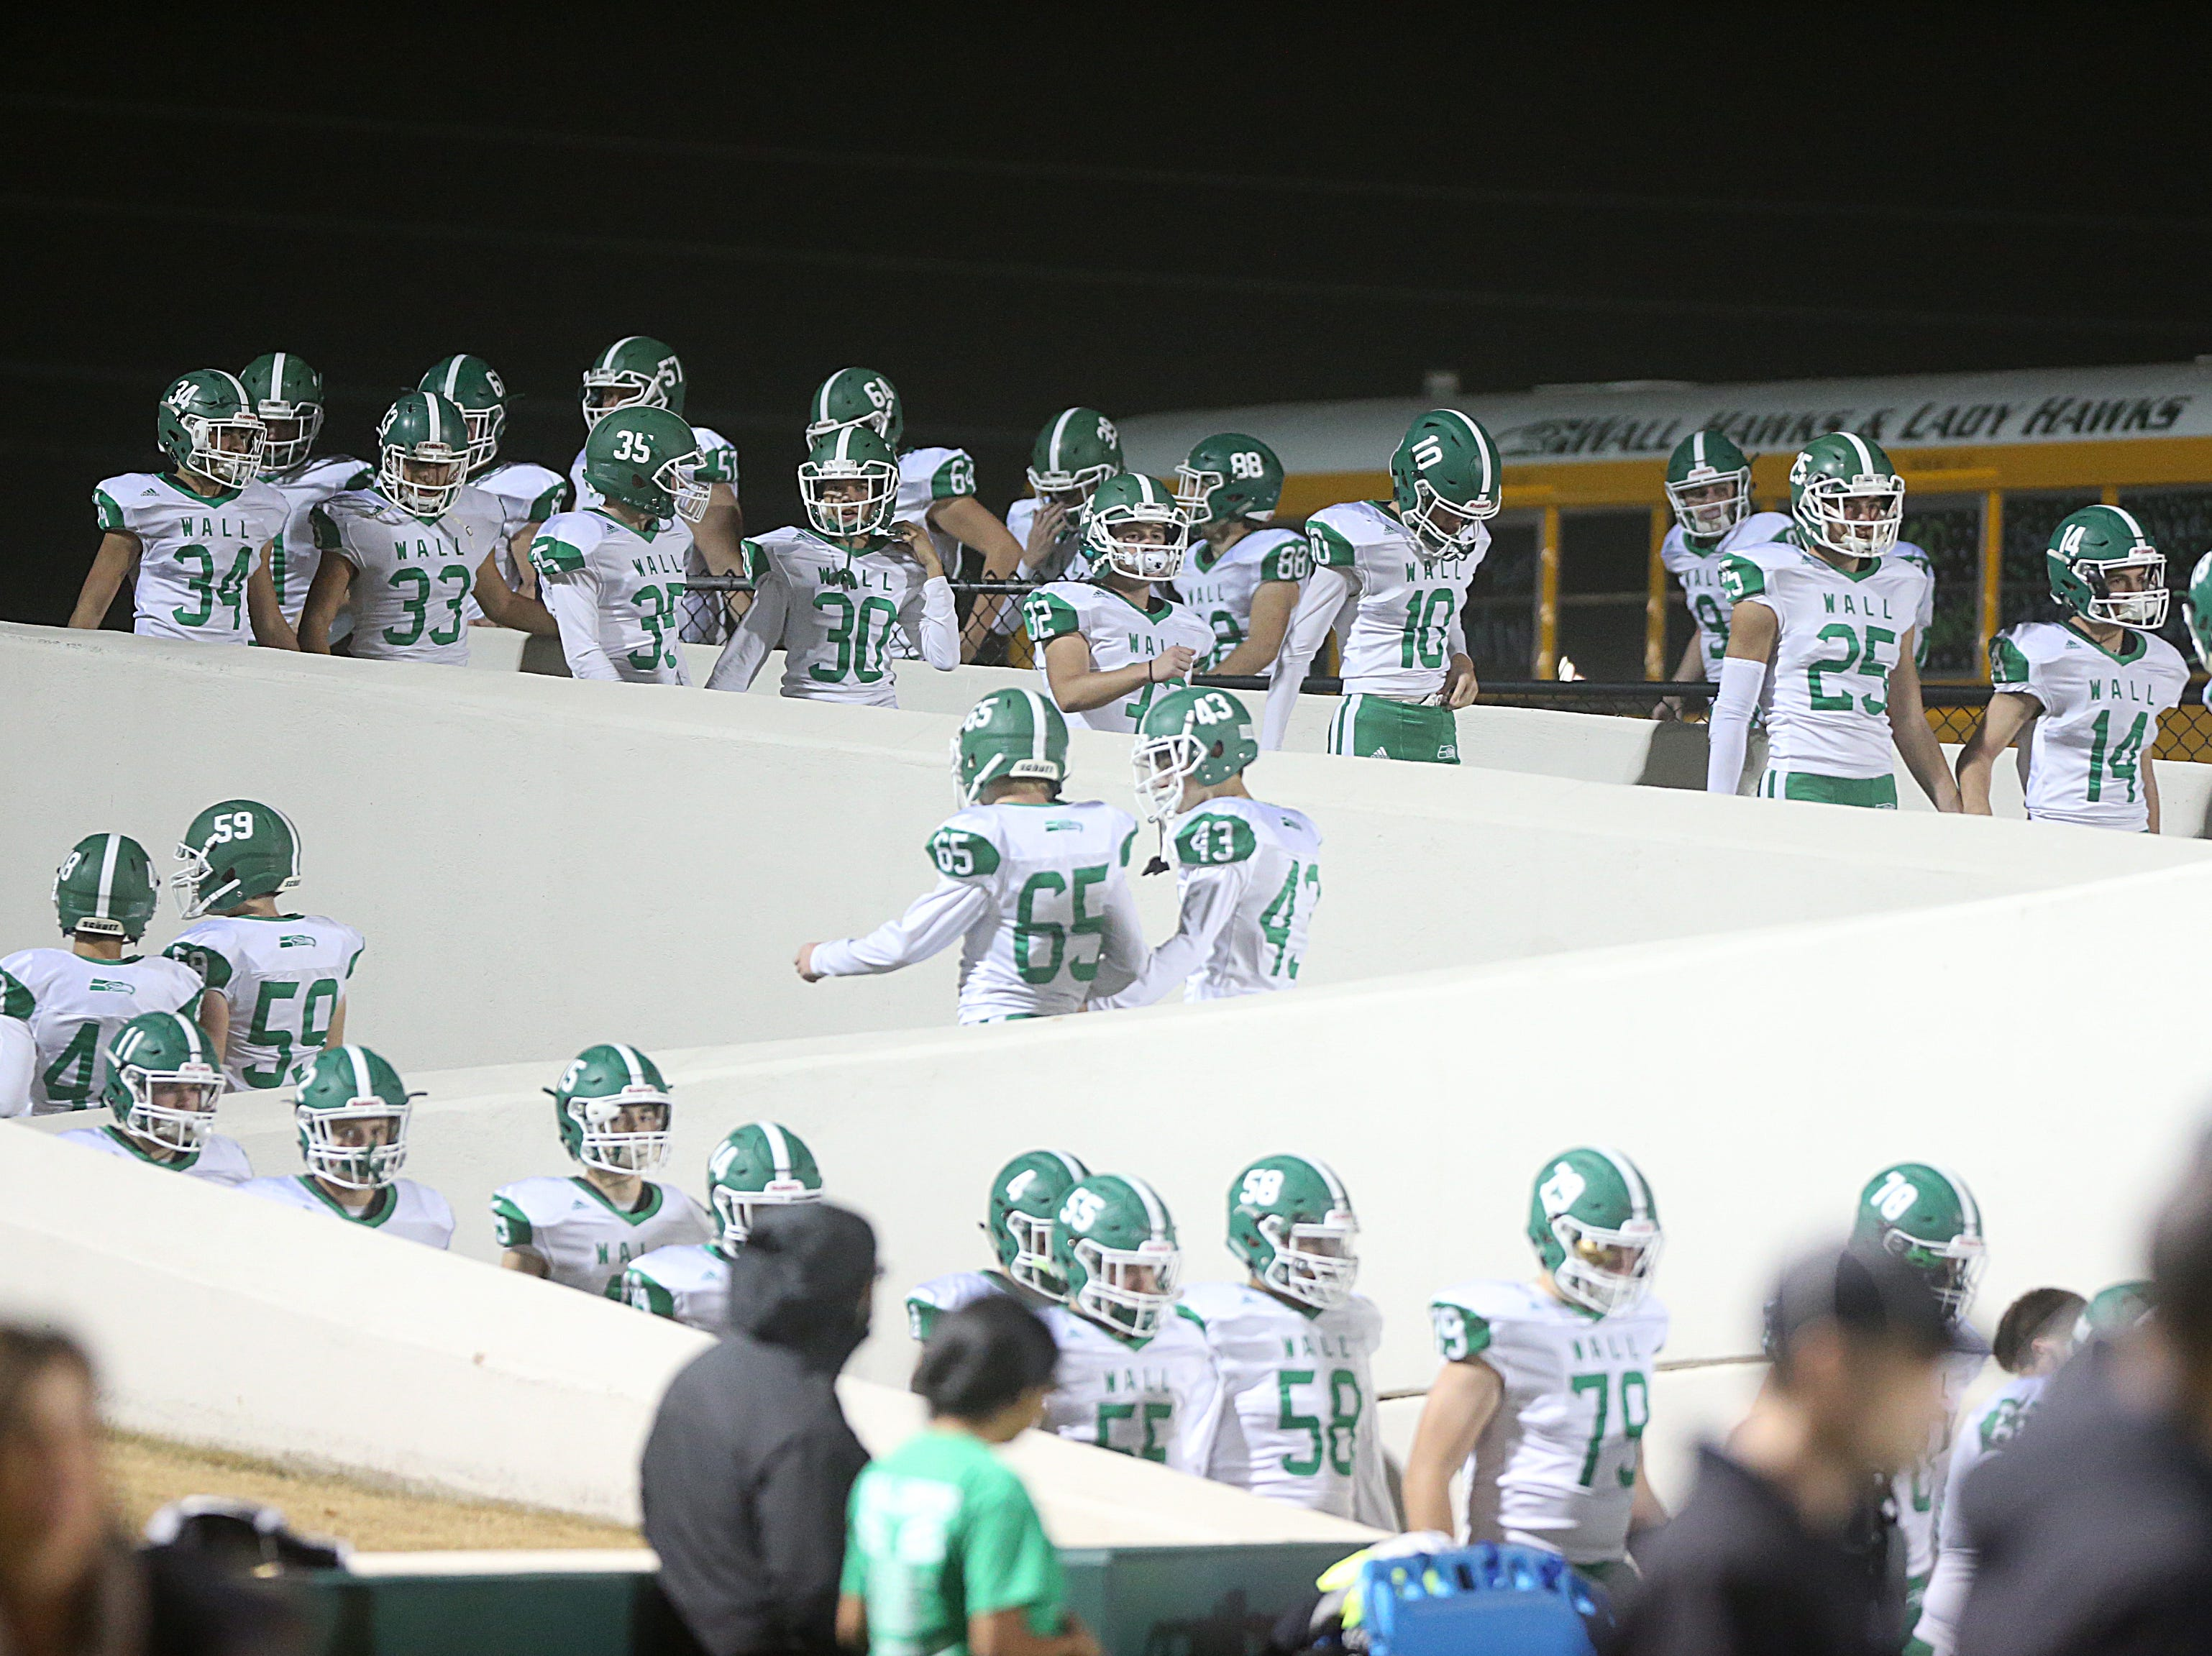 The Wall Hawks make their way to the field Friday, Nov. 30, 2018, during their game against the Brock Eagles at Shotwell Stadium in Abilene. Wall lost 13 to 35.